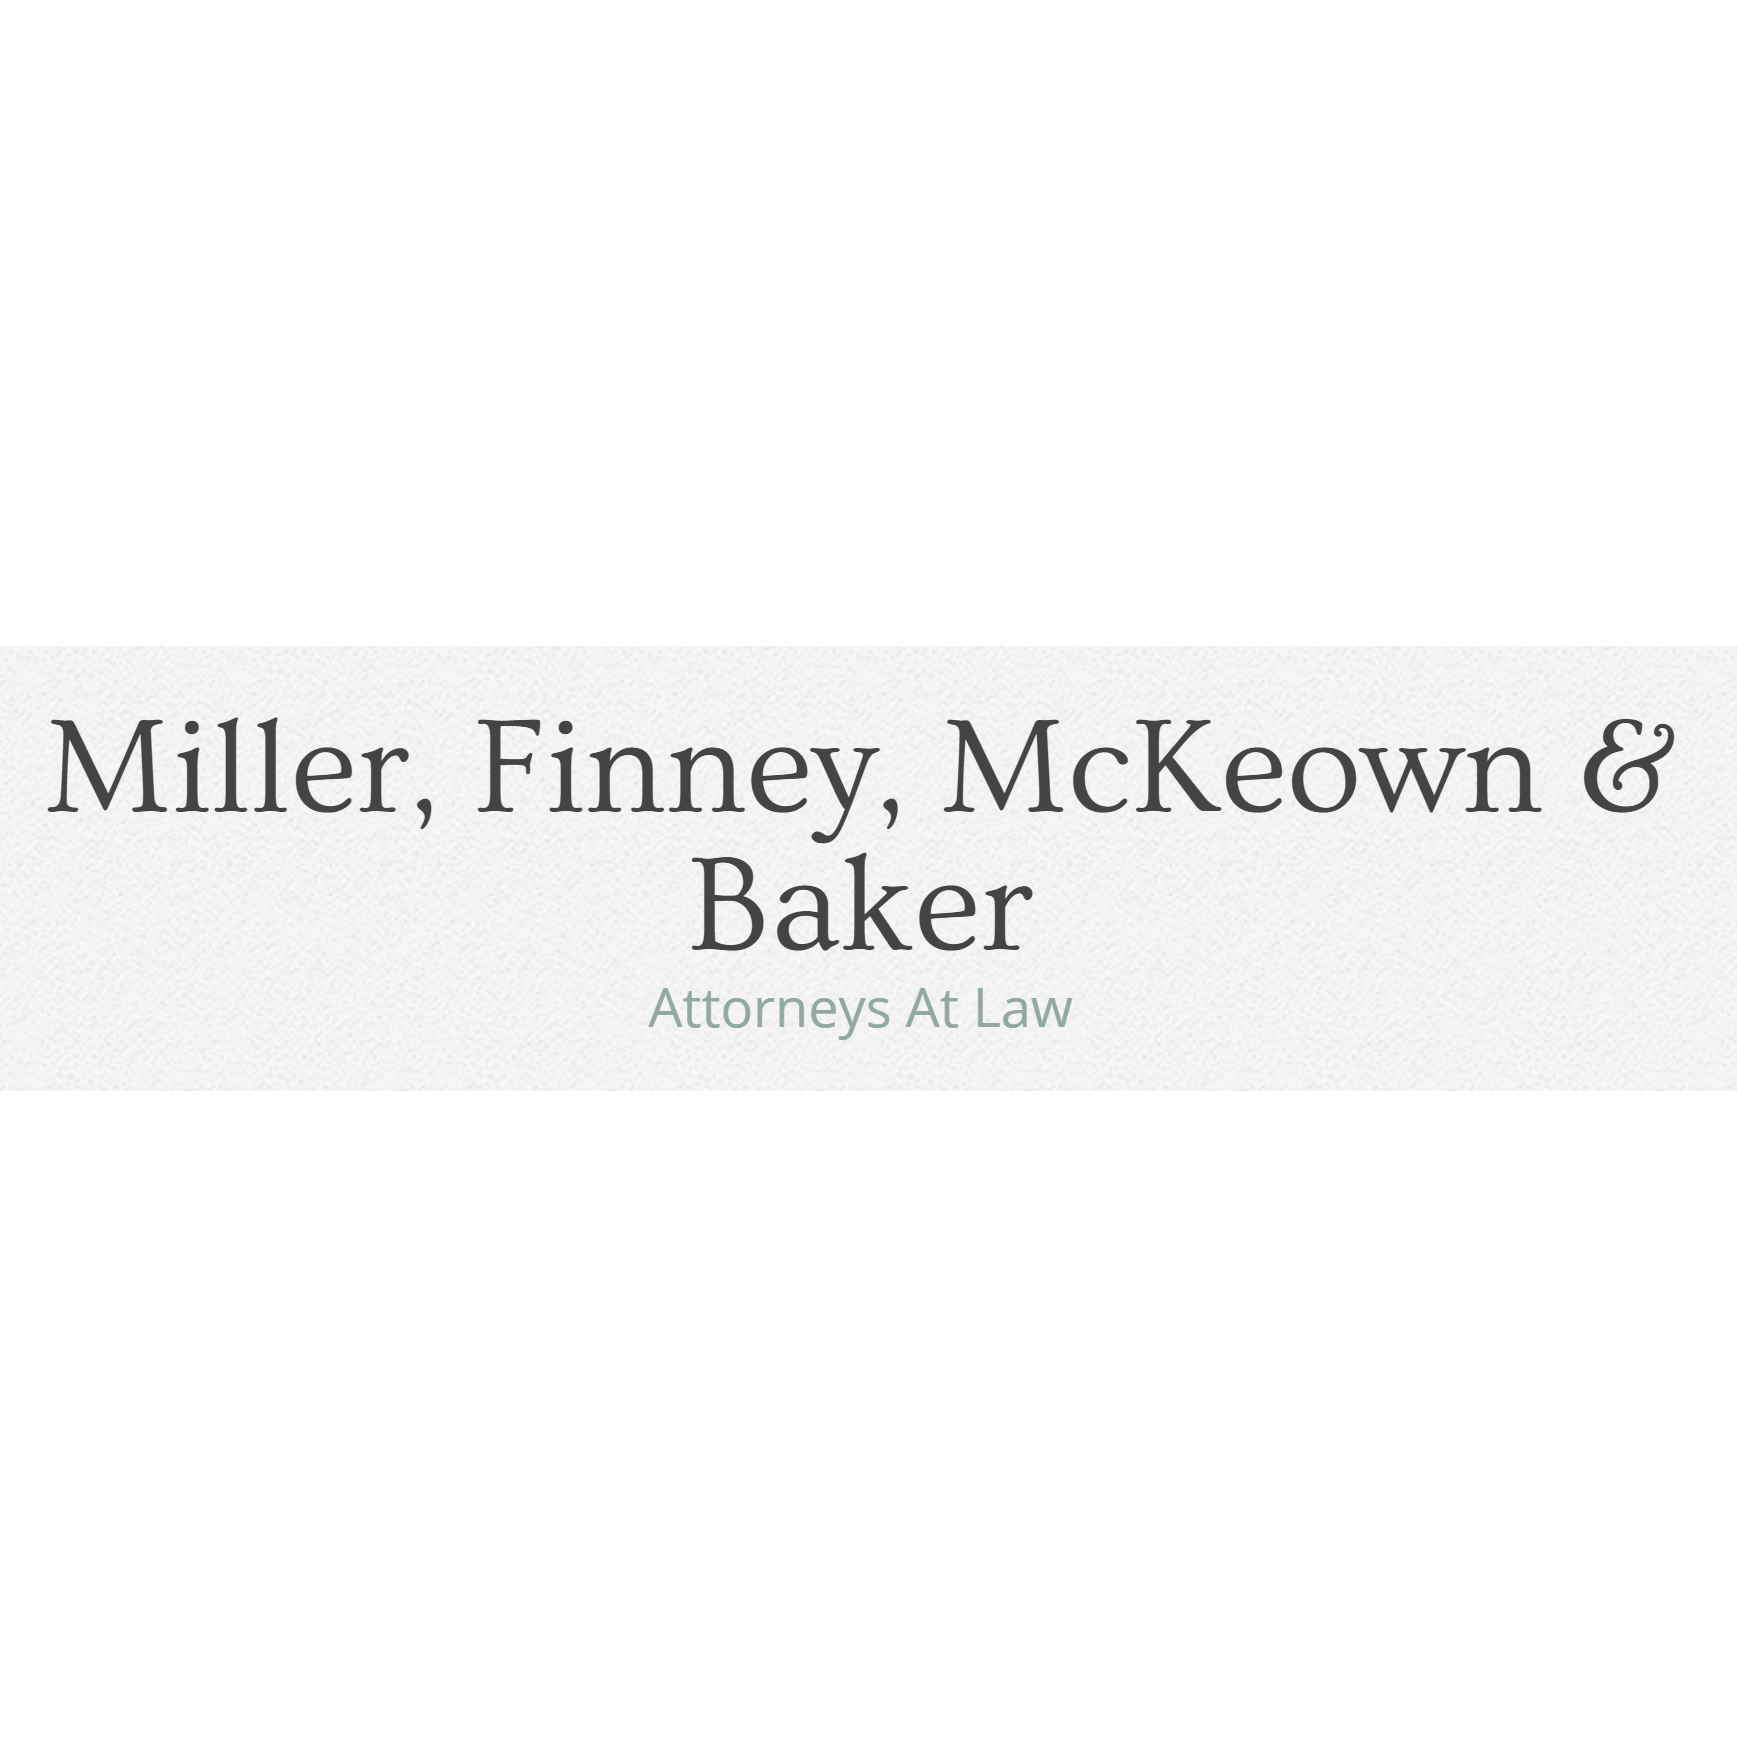 Miller, Finney, McKeown & Baker, Attorneys At Law - Xenia, OH - Attorneys